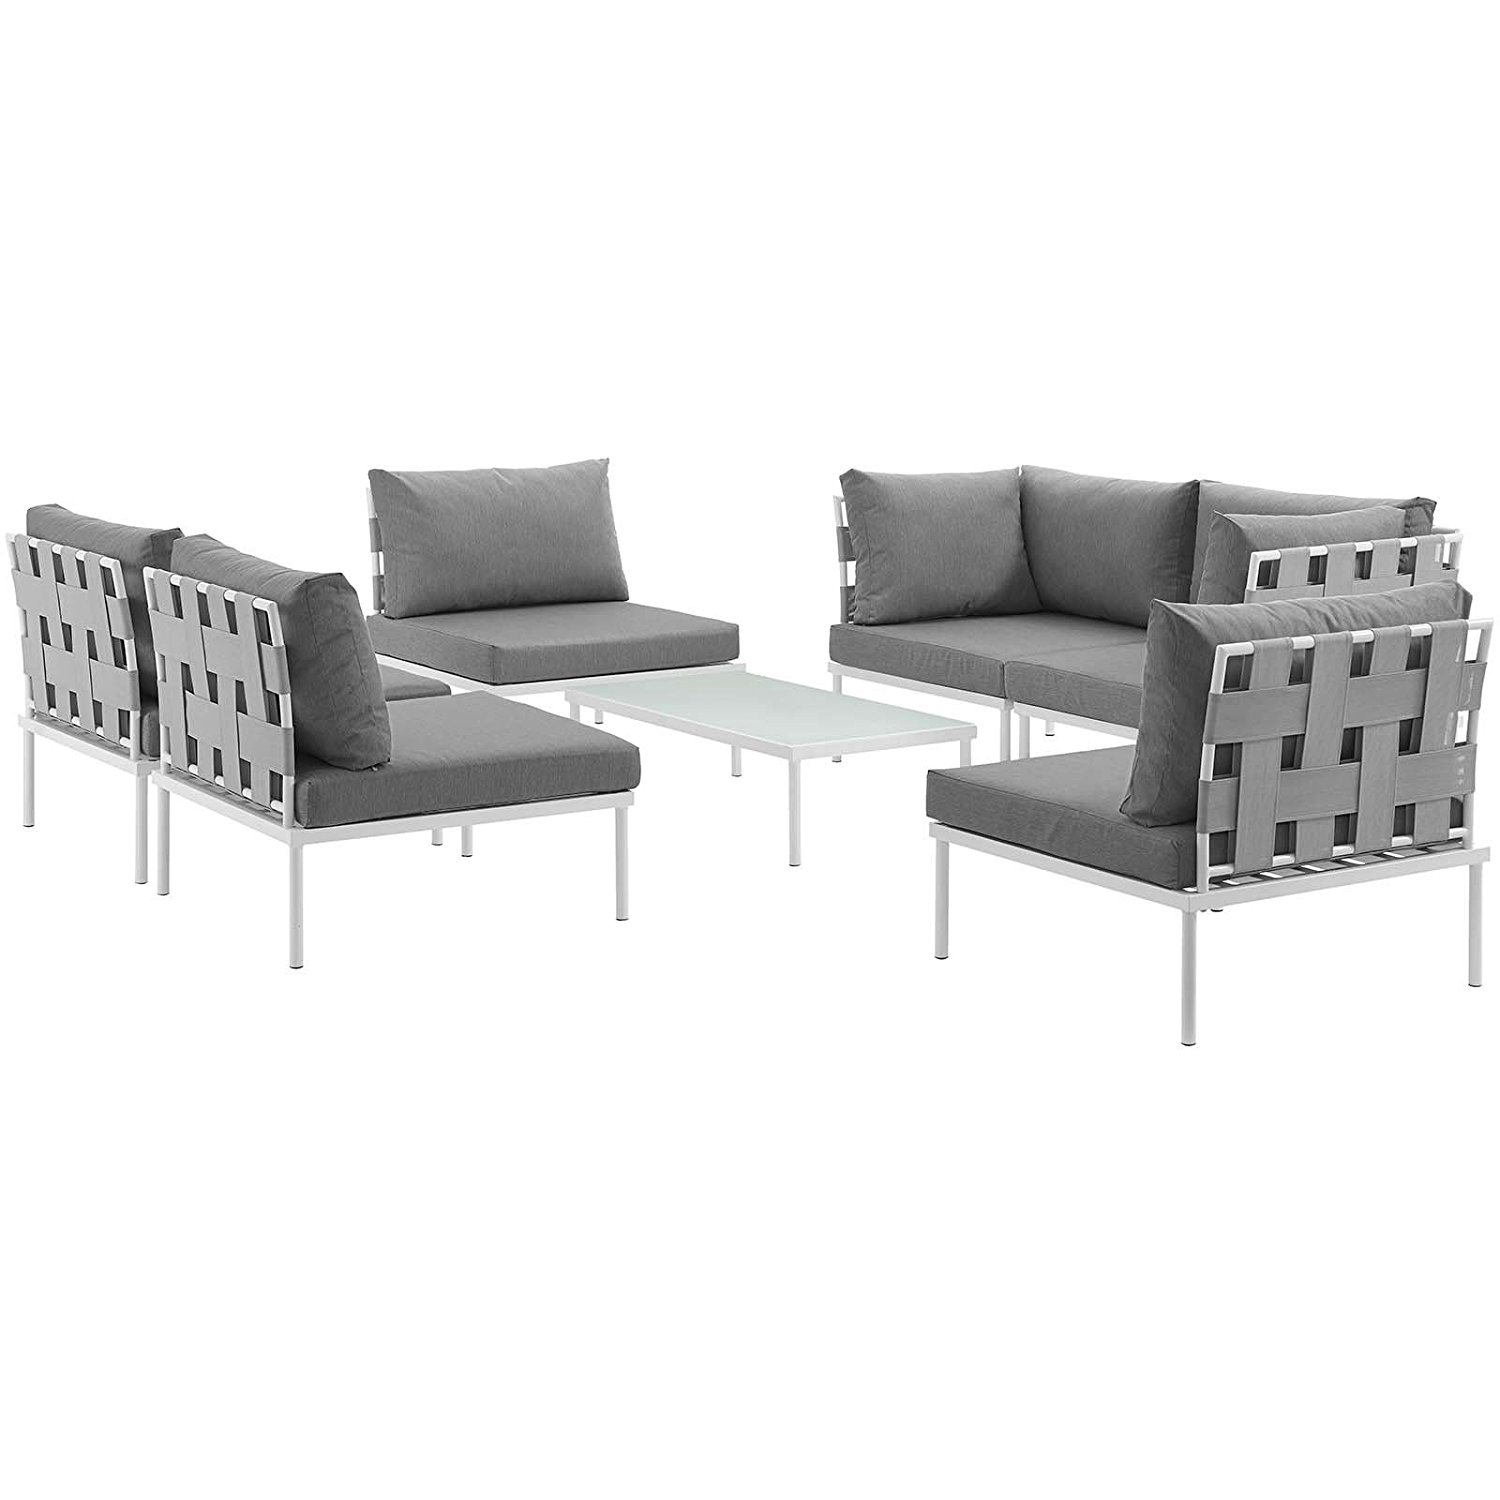 Sandhill 7 Piece Outdoor Sofa Sectional Set Seats 5 In